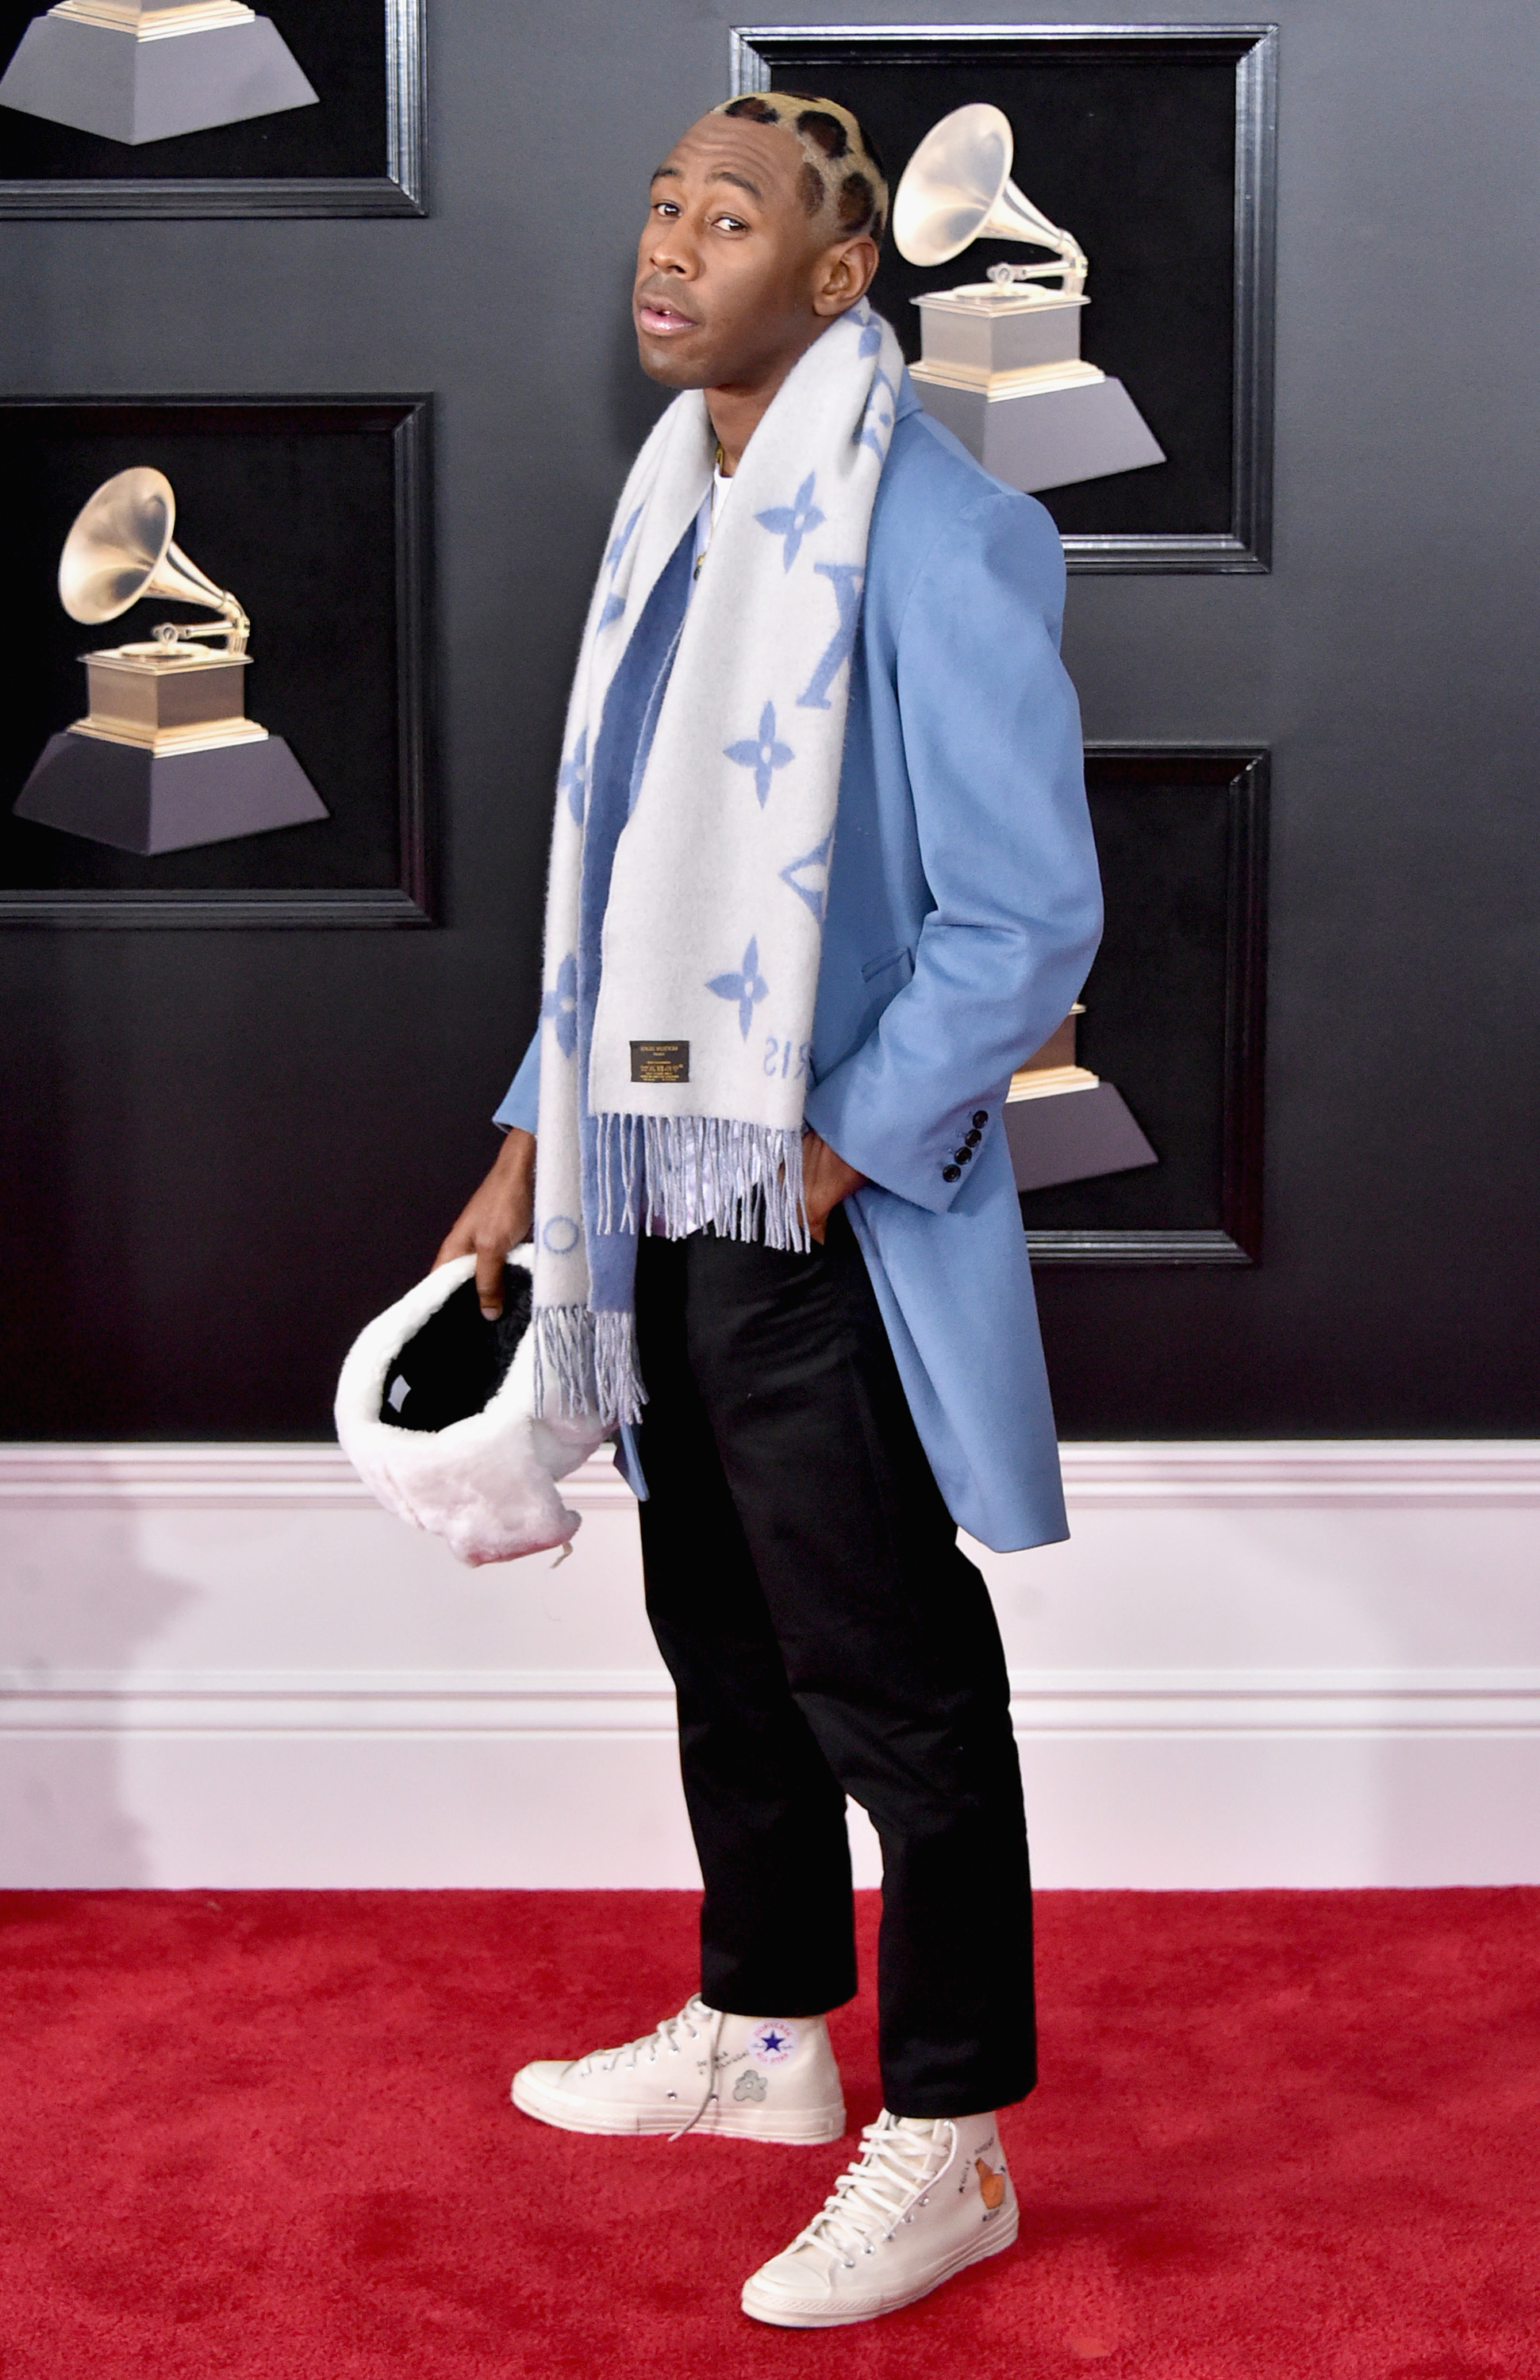 Tyler, The Creator at the 60th GRAMMY Awards in 2018